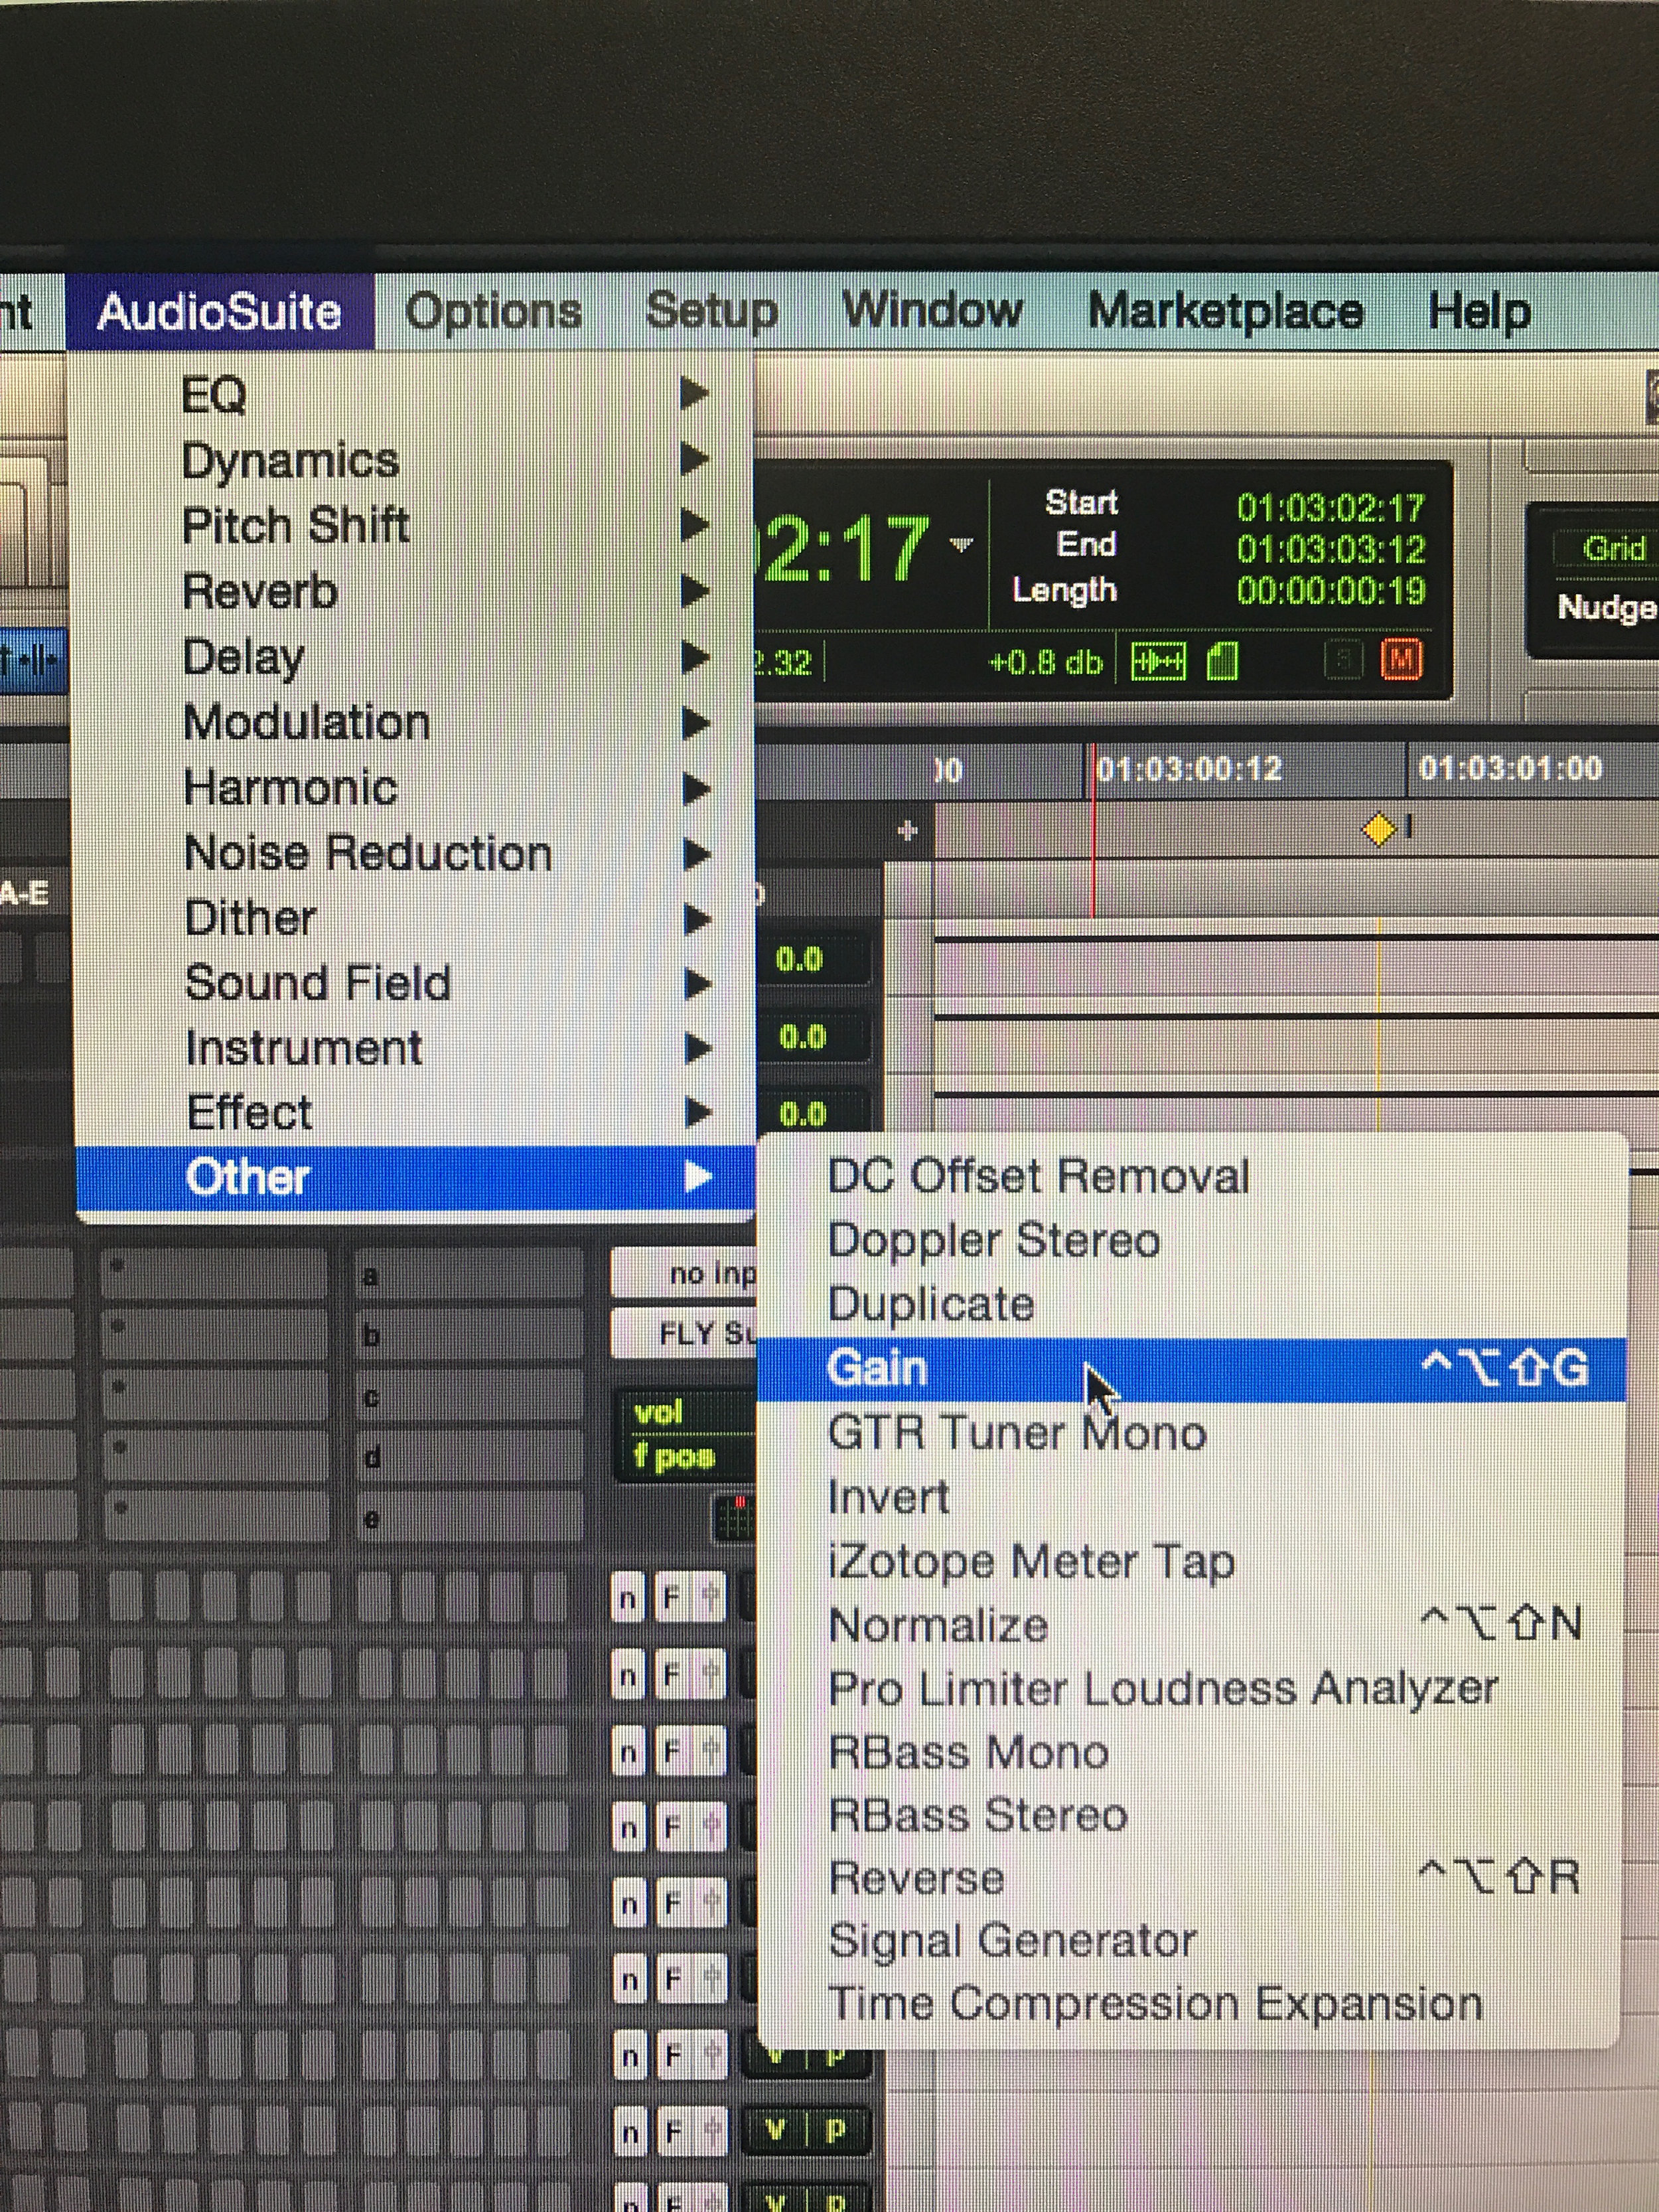 Custom keyboard shortcut for the Gain function in Pro Tools.